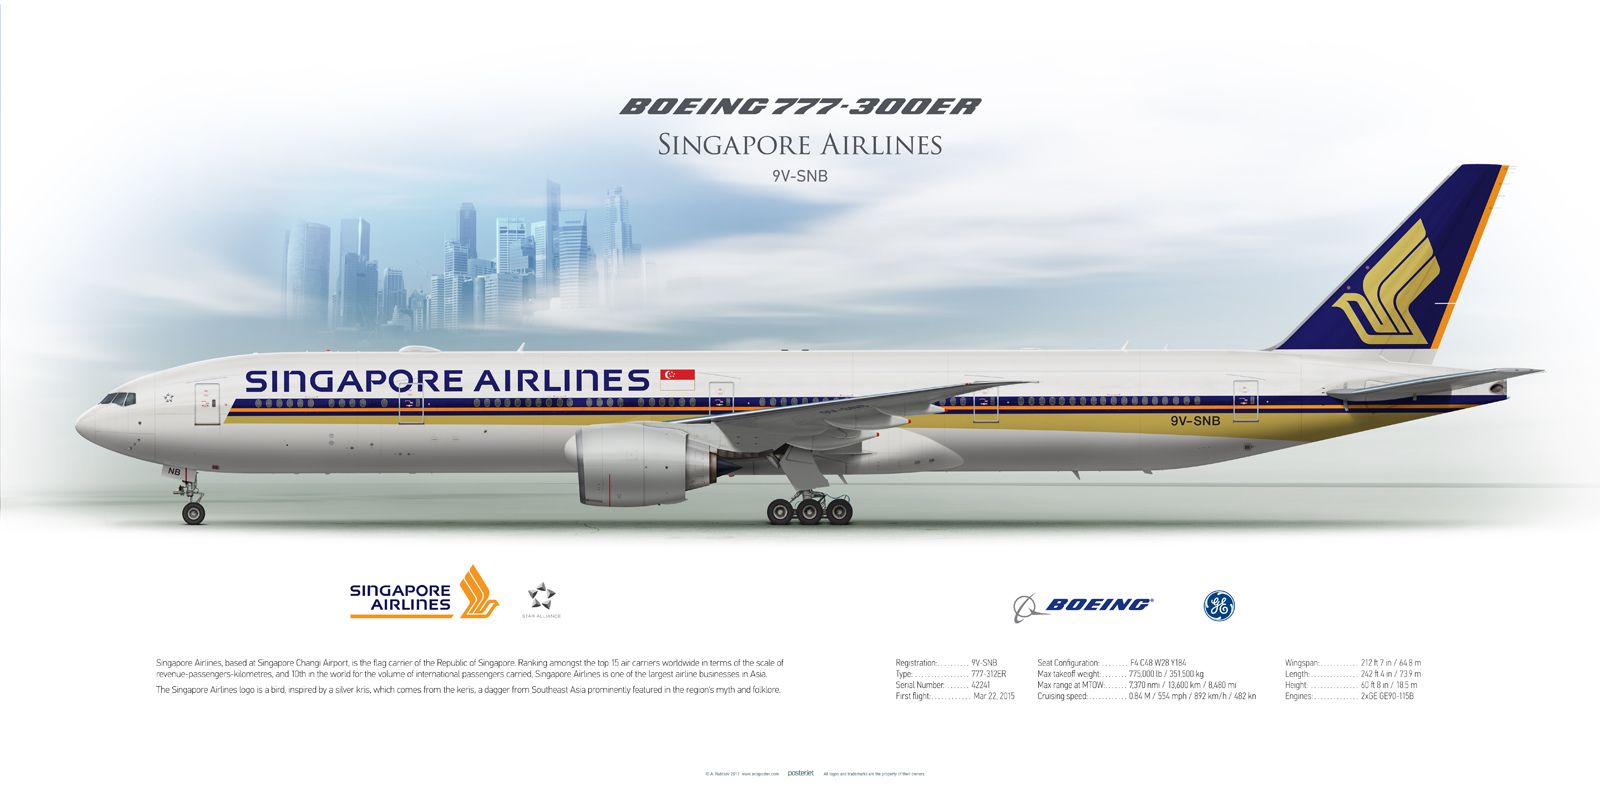 Boeing 777 300er Singapore Airlines 9v Snb Singapore Airlines